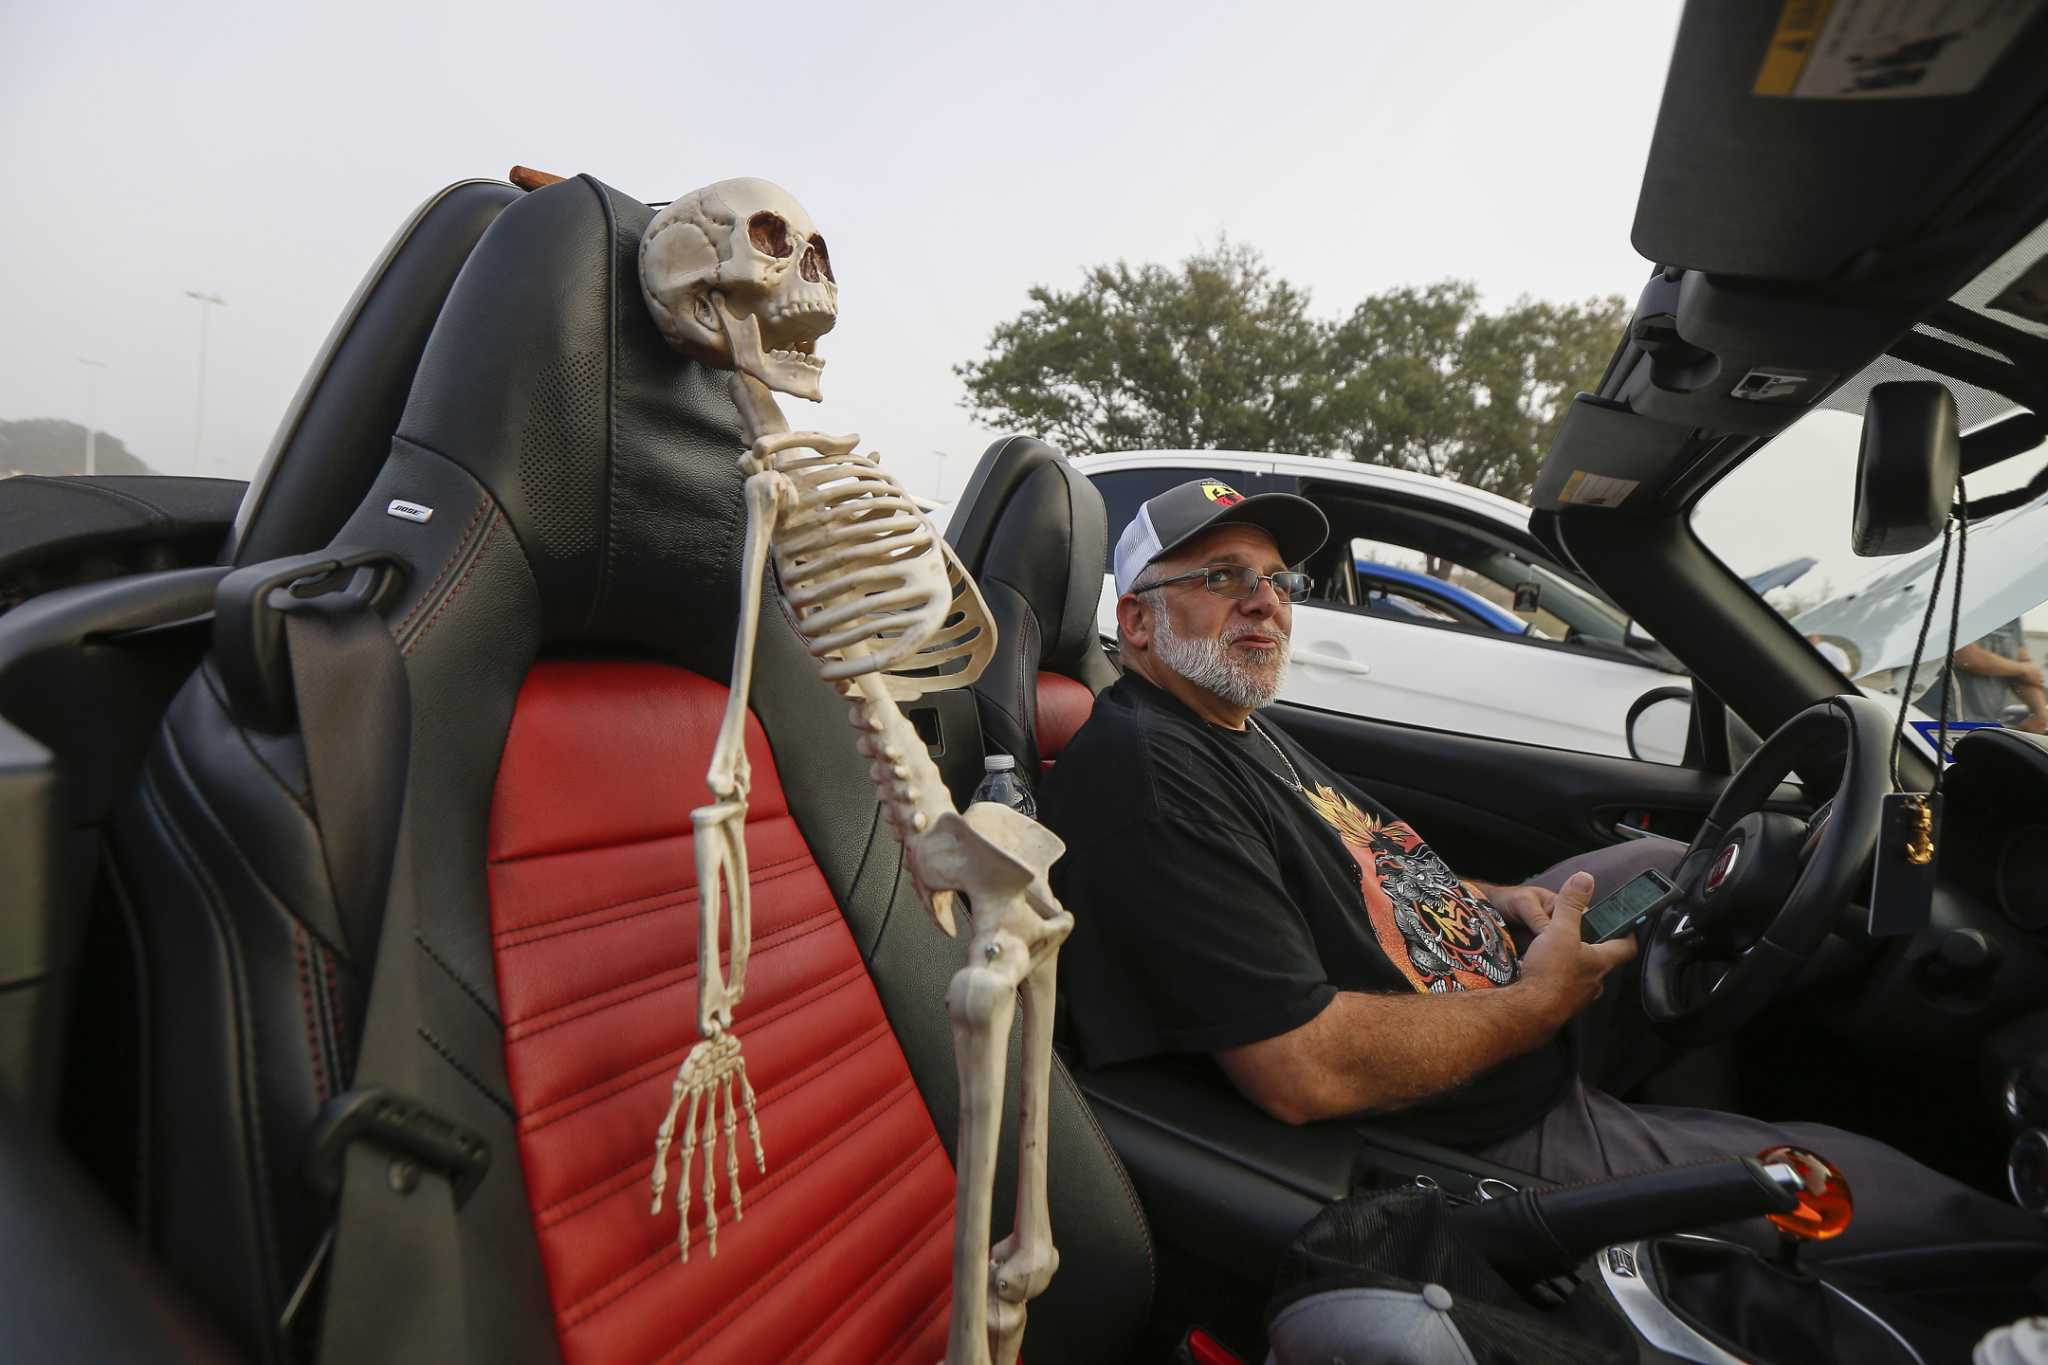 'A bad name': Houston car enthusiasts look to distance cruises, meets from 'takeovers'